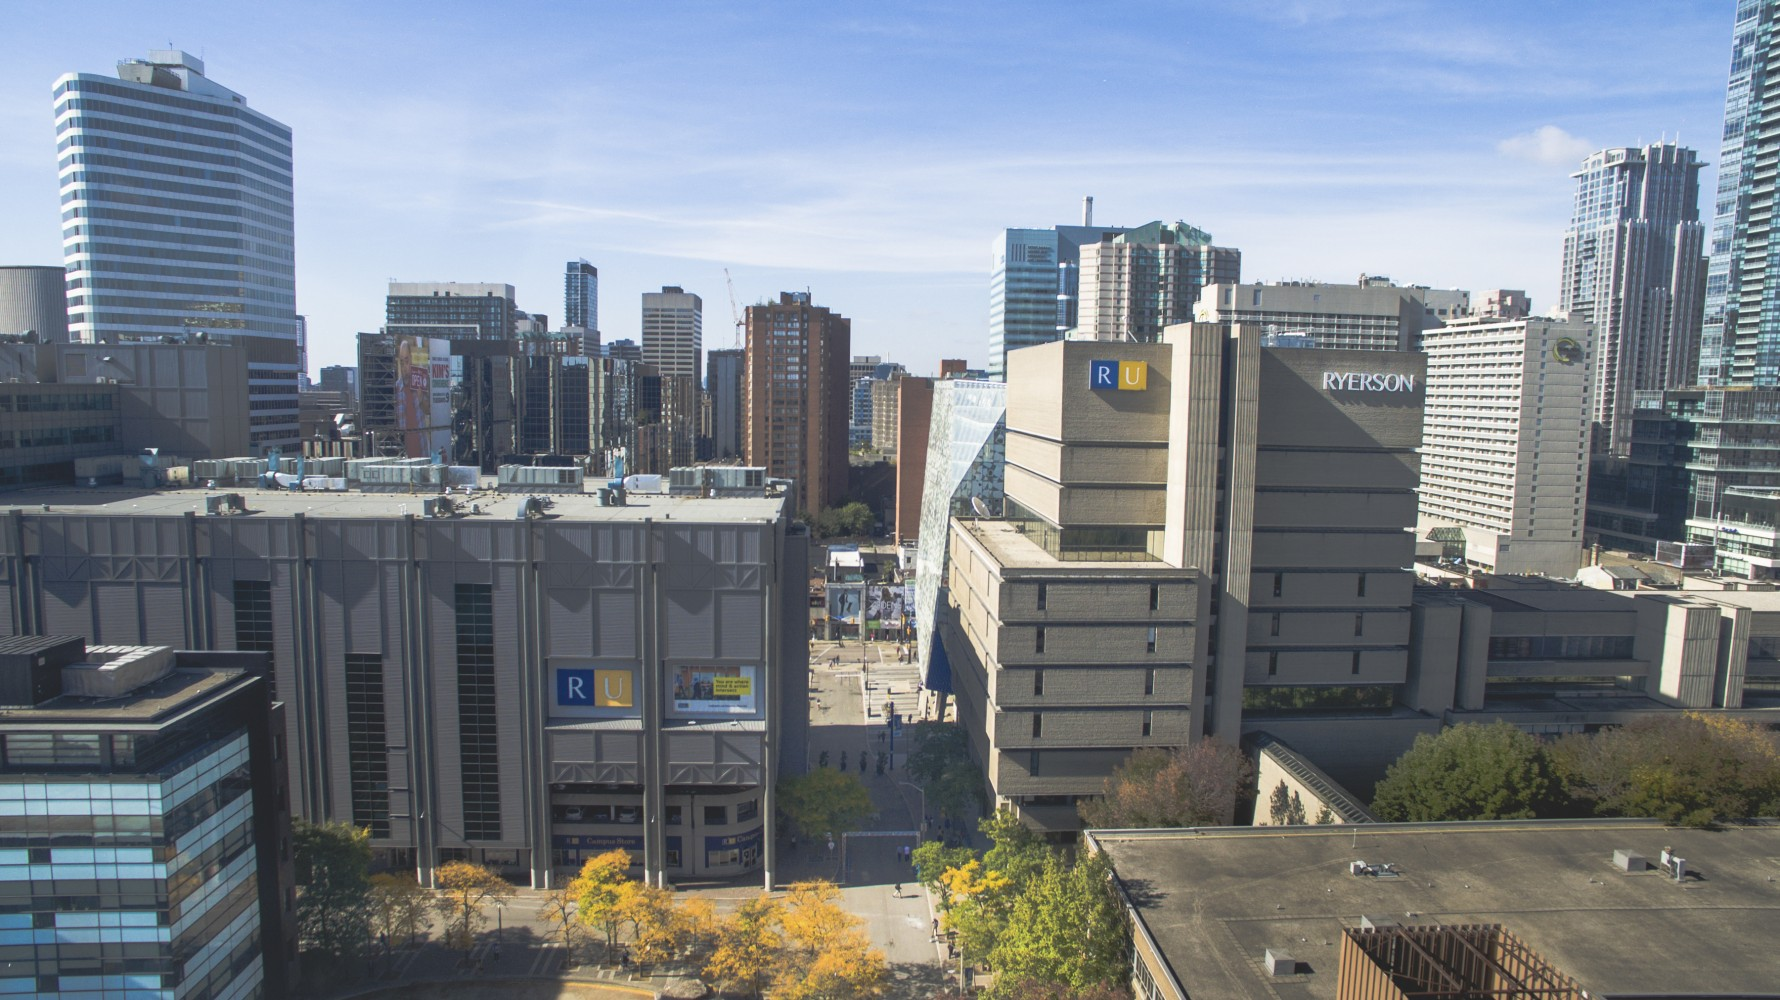 Brampton welcomes calls for Ryerson medical school, but avoids talk about the university's controversial namesake